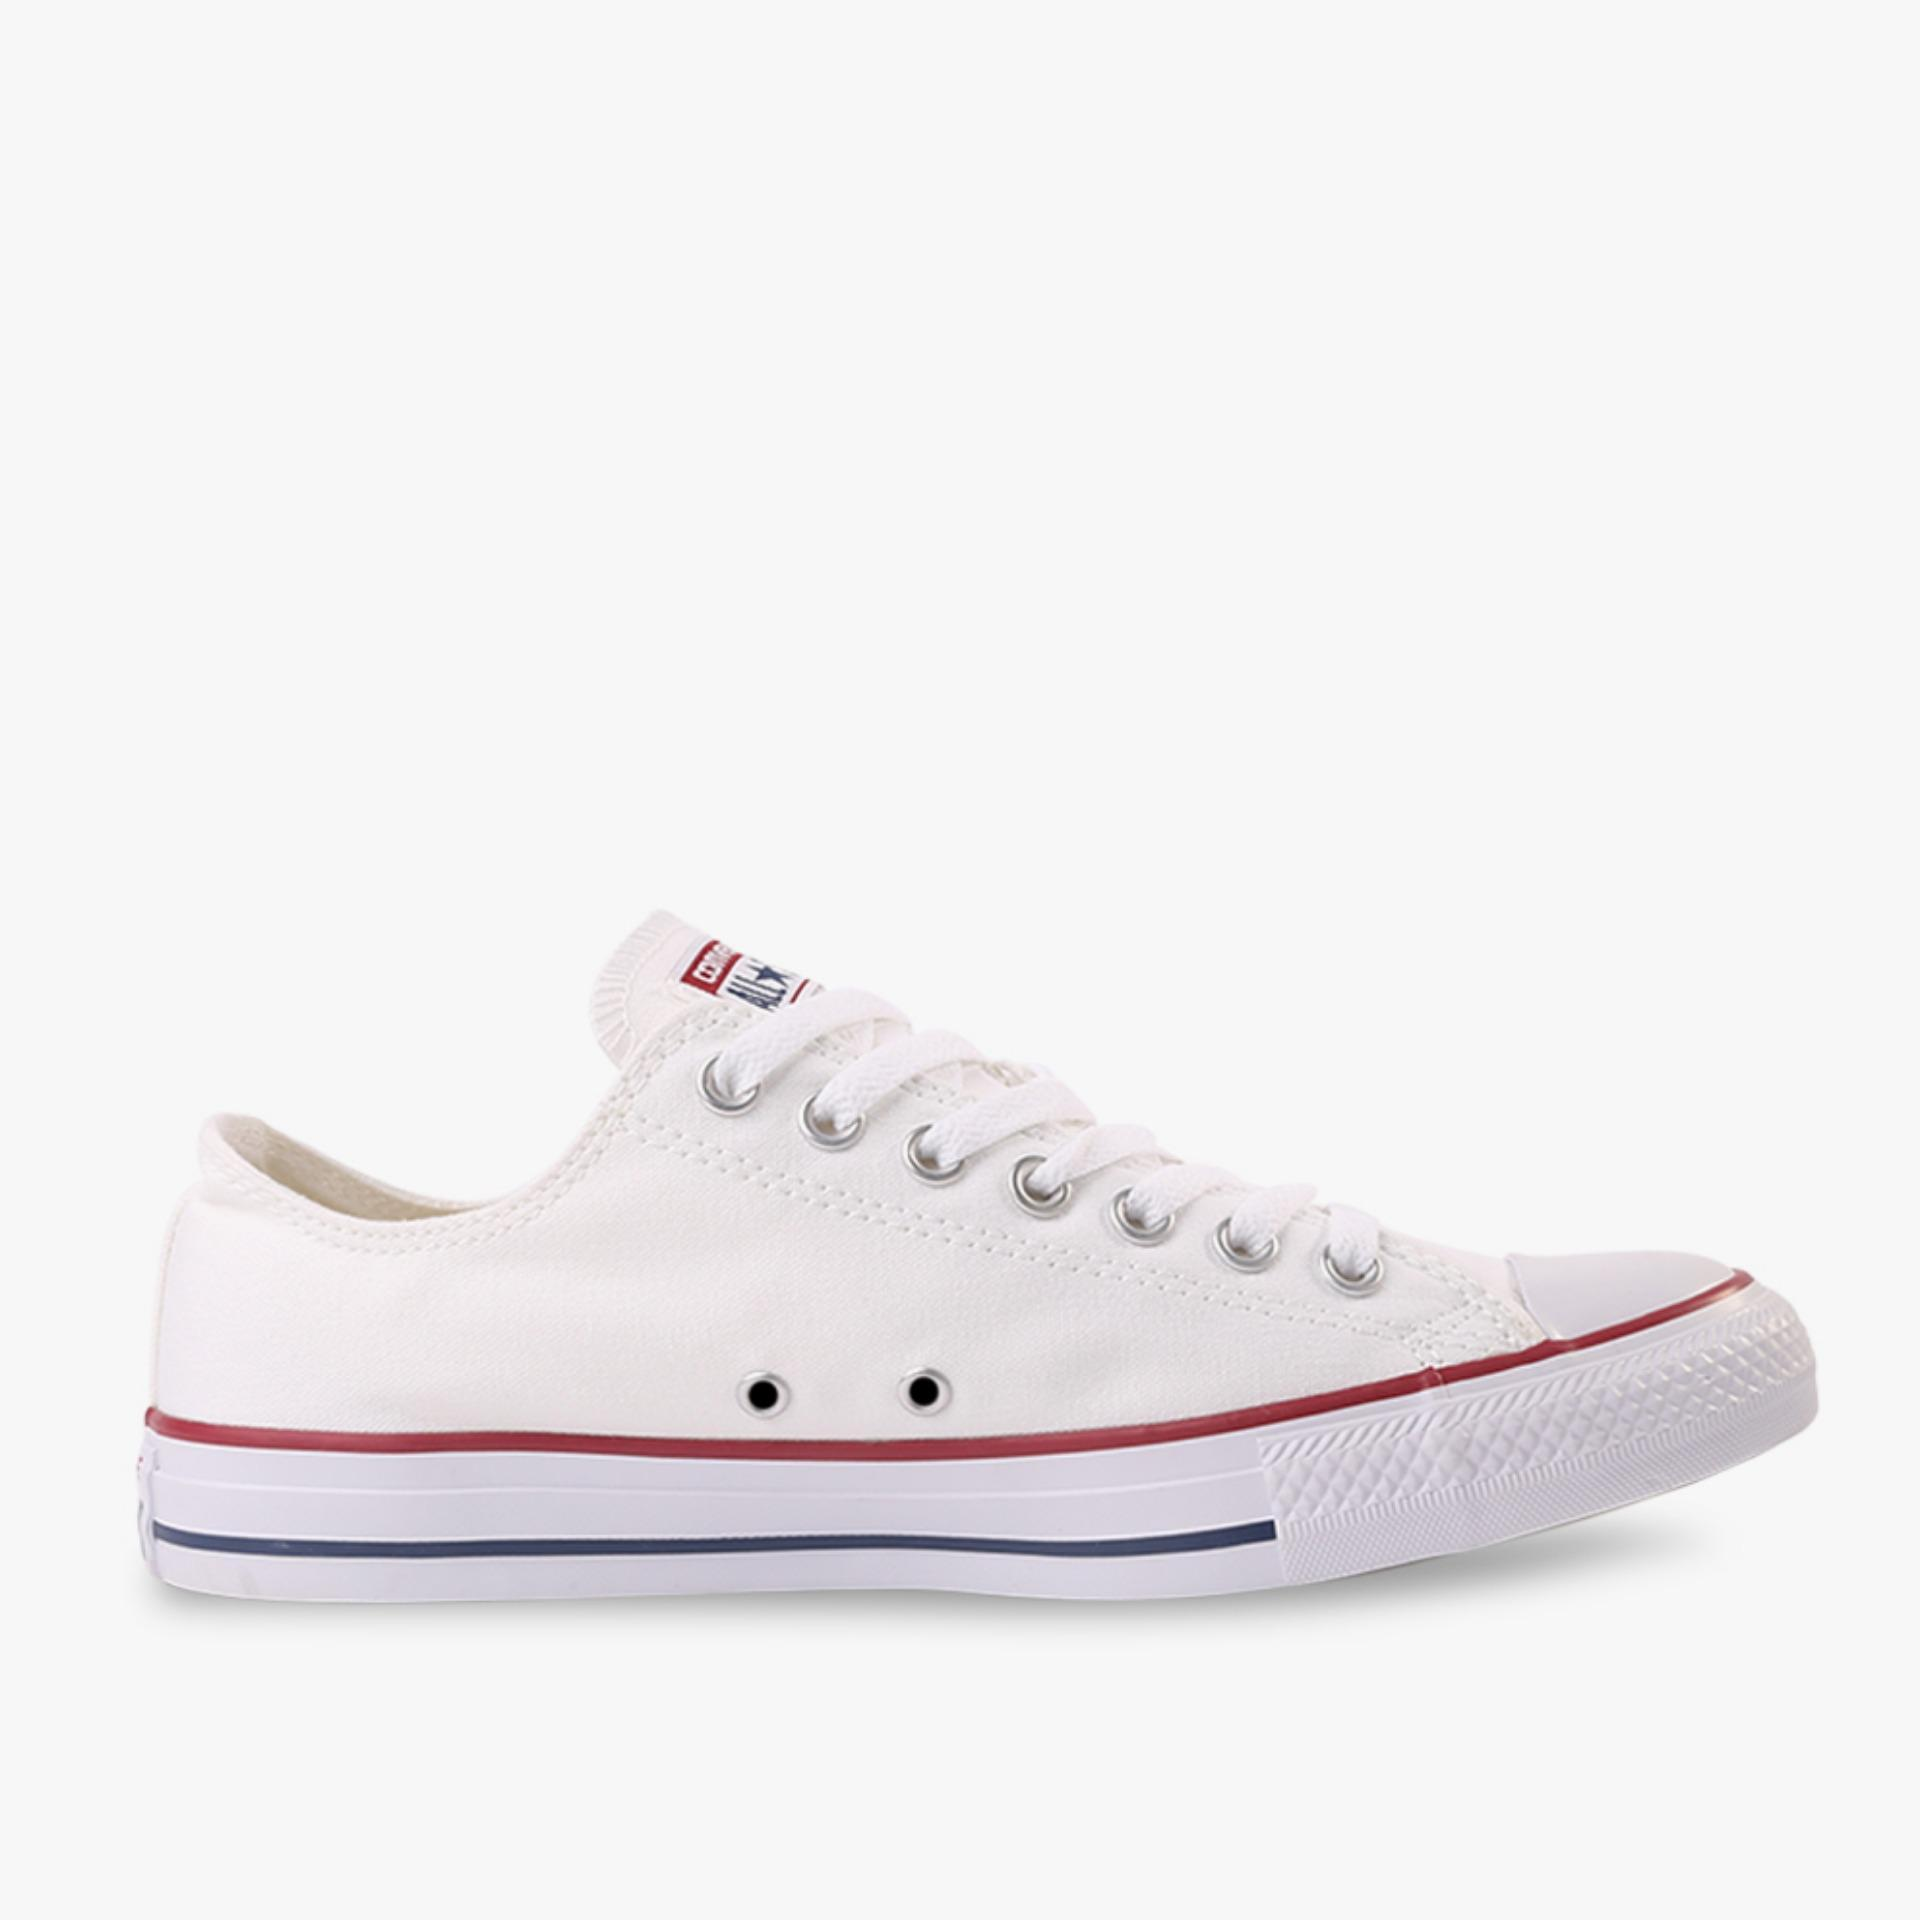 Converse Chuck Taylor All Star Classic Colour Low Top Sepatu Sneakers-Hitam